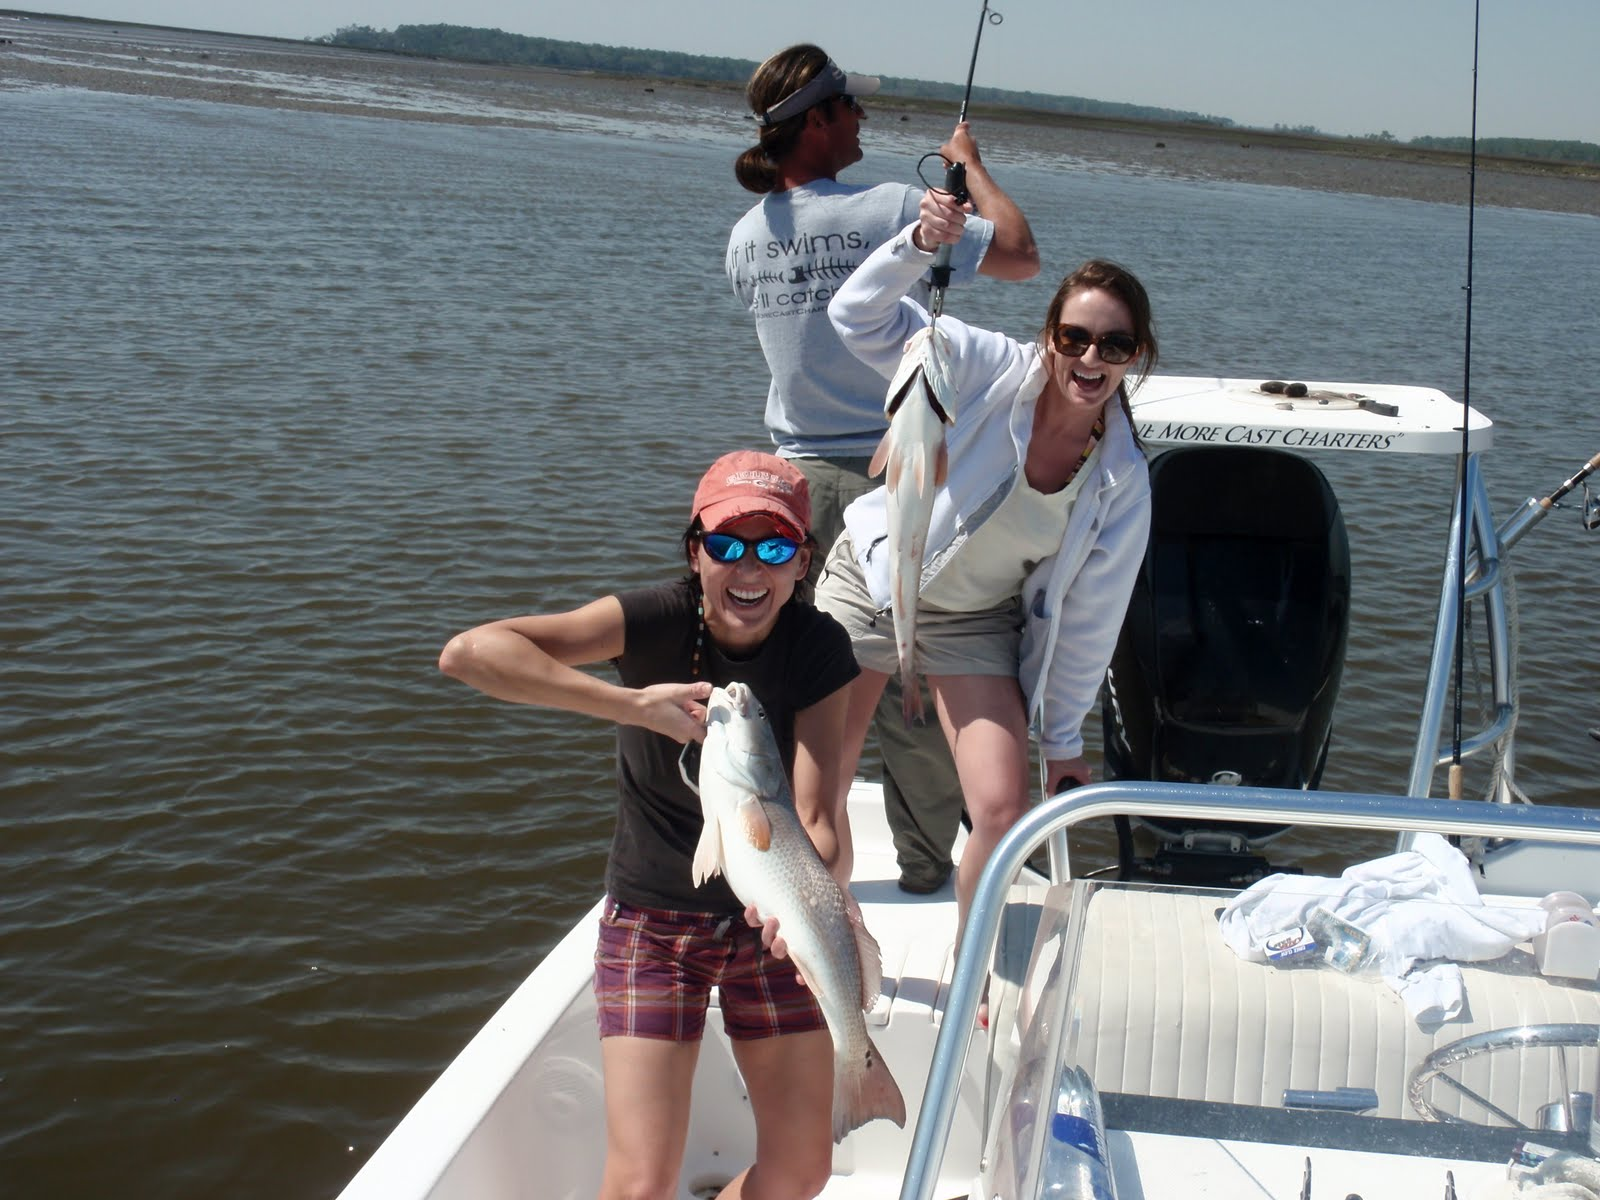 Savannah style one more cast charter fishing in savannah for Savannah fishing charters